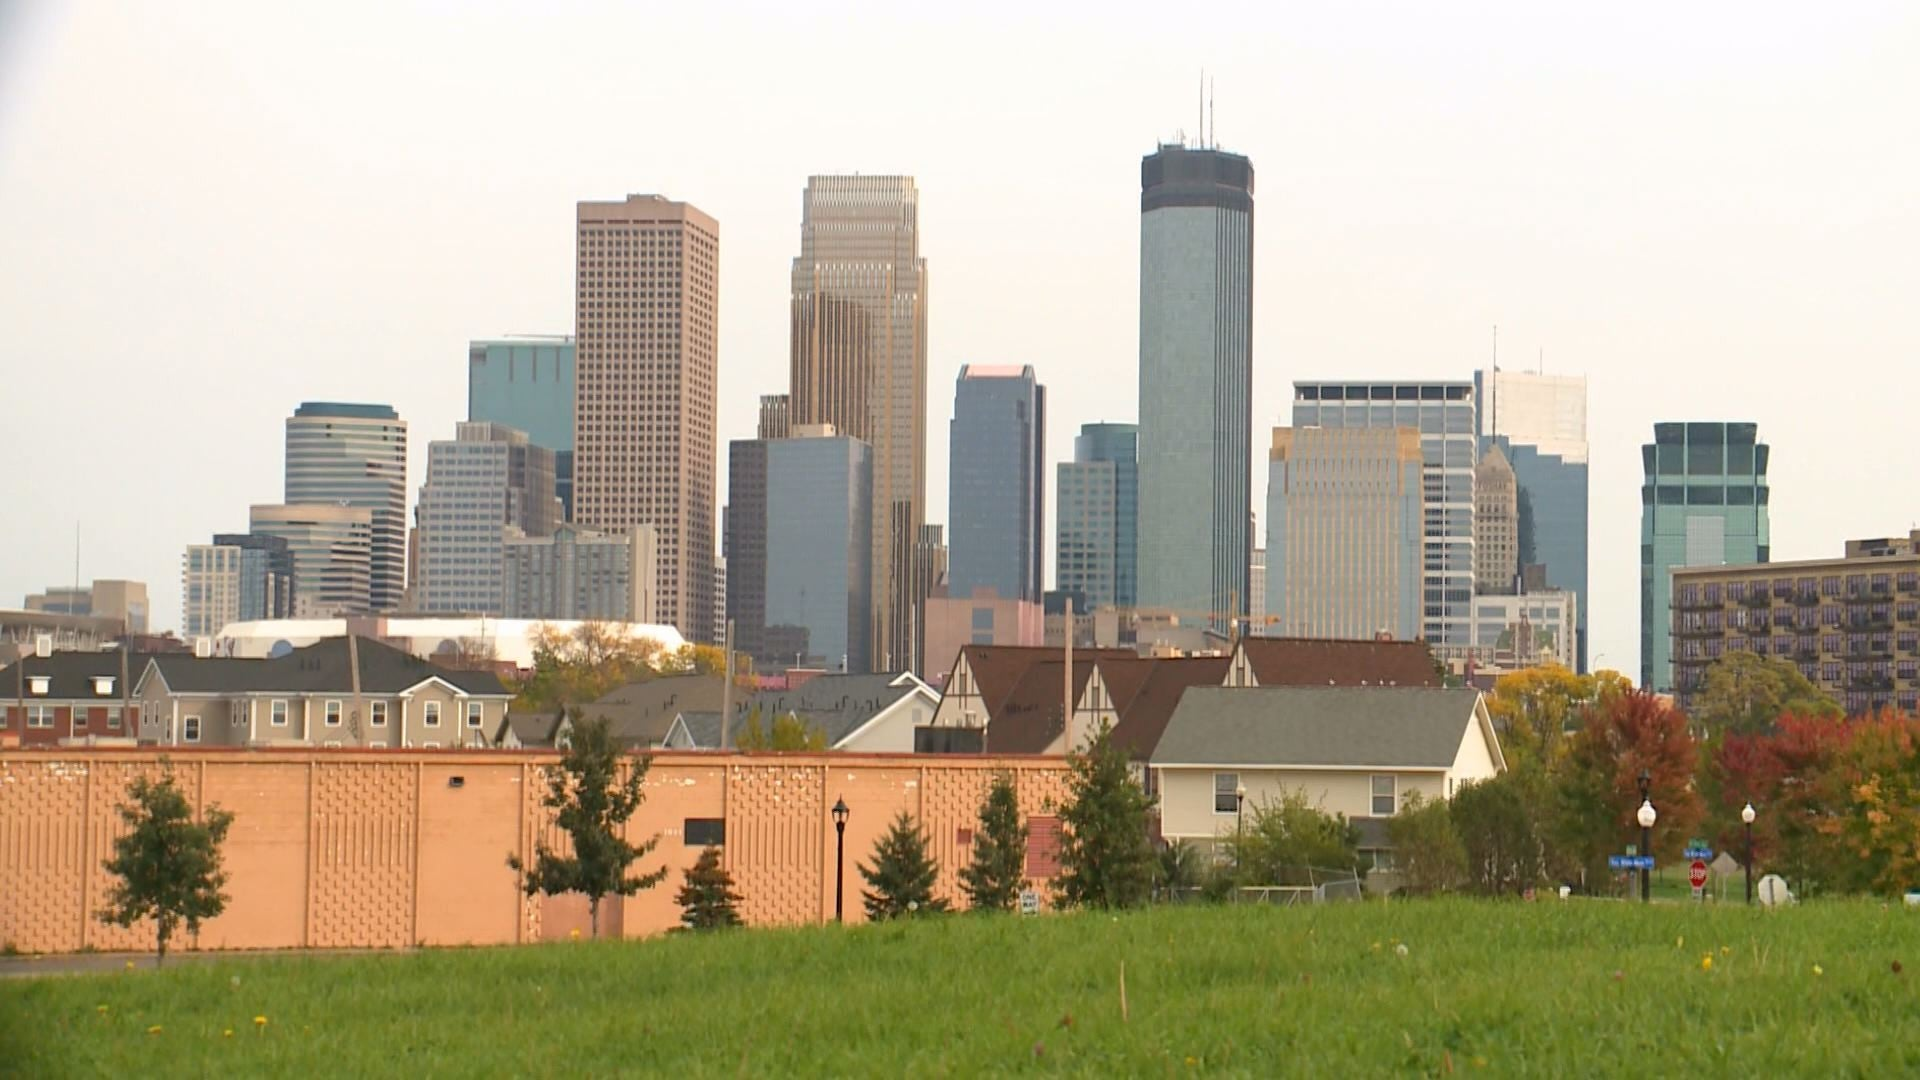 Air pollution advisory issued for parts of MN